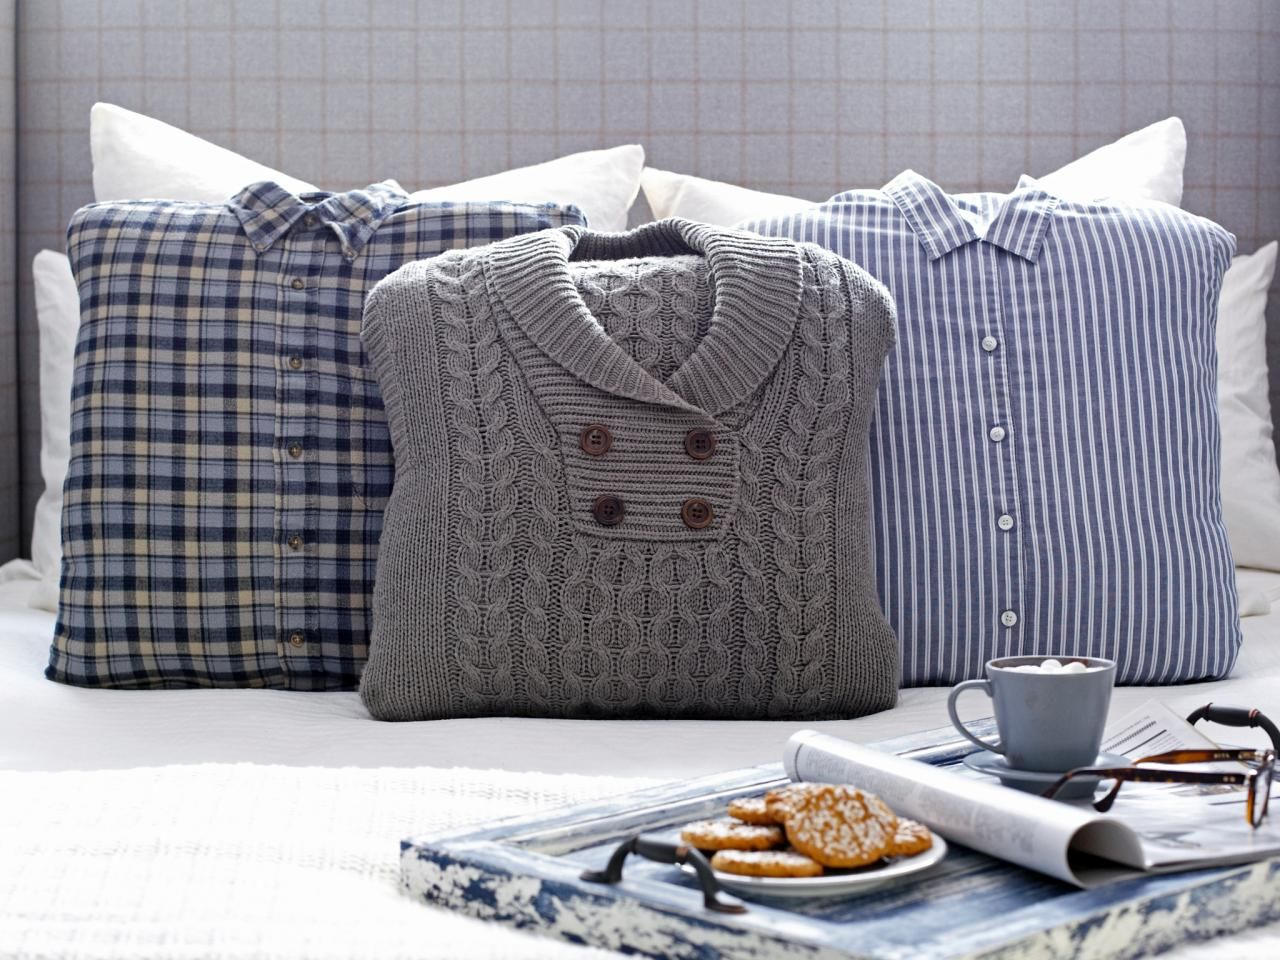 Diy Pillowcase Out Of Shirt: Turn an Old Sweater Into a Chic  Preppy Pillow   Pillows  Fun    ,